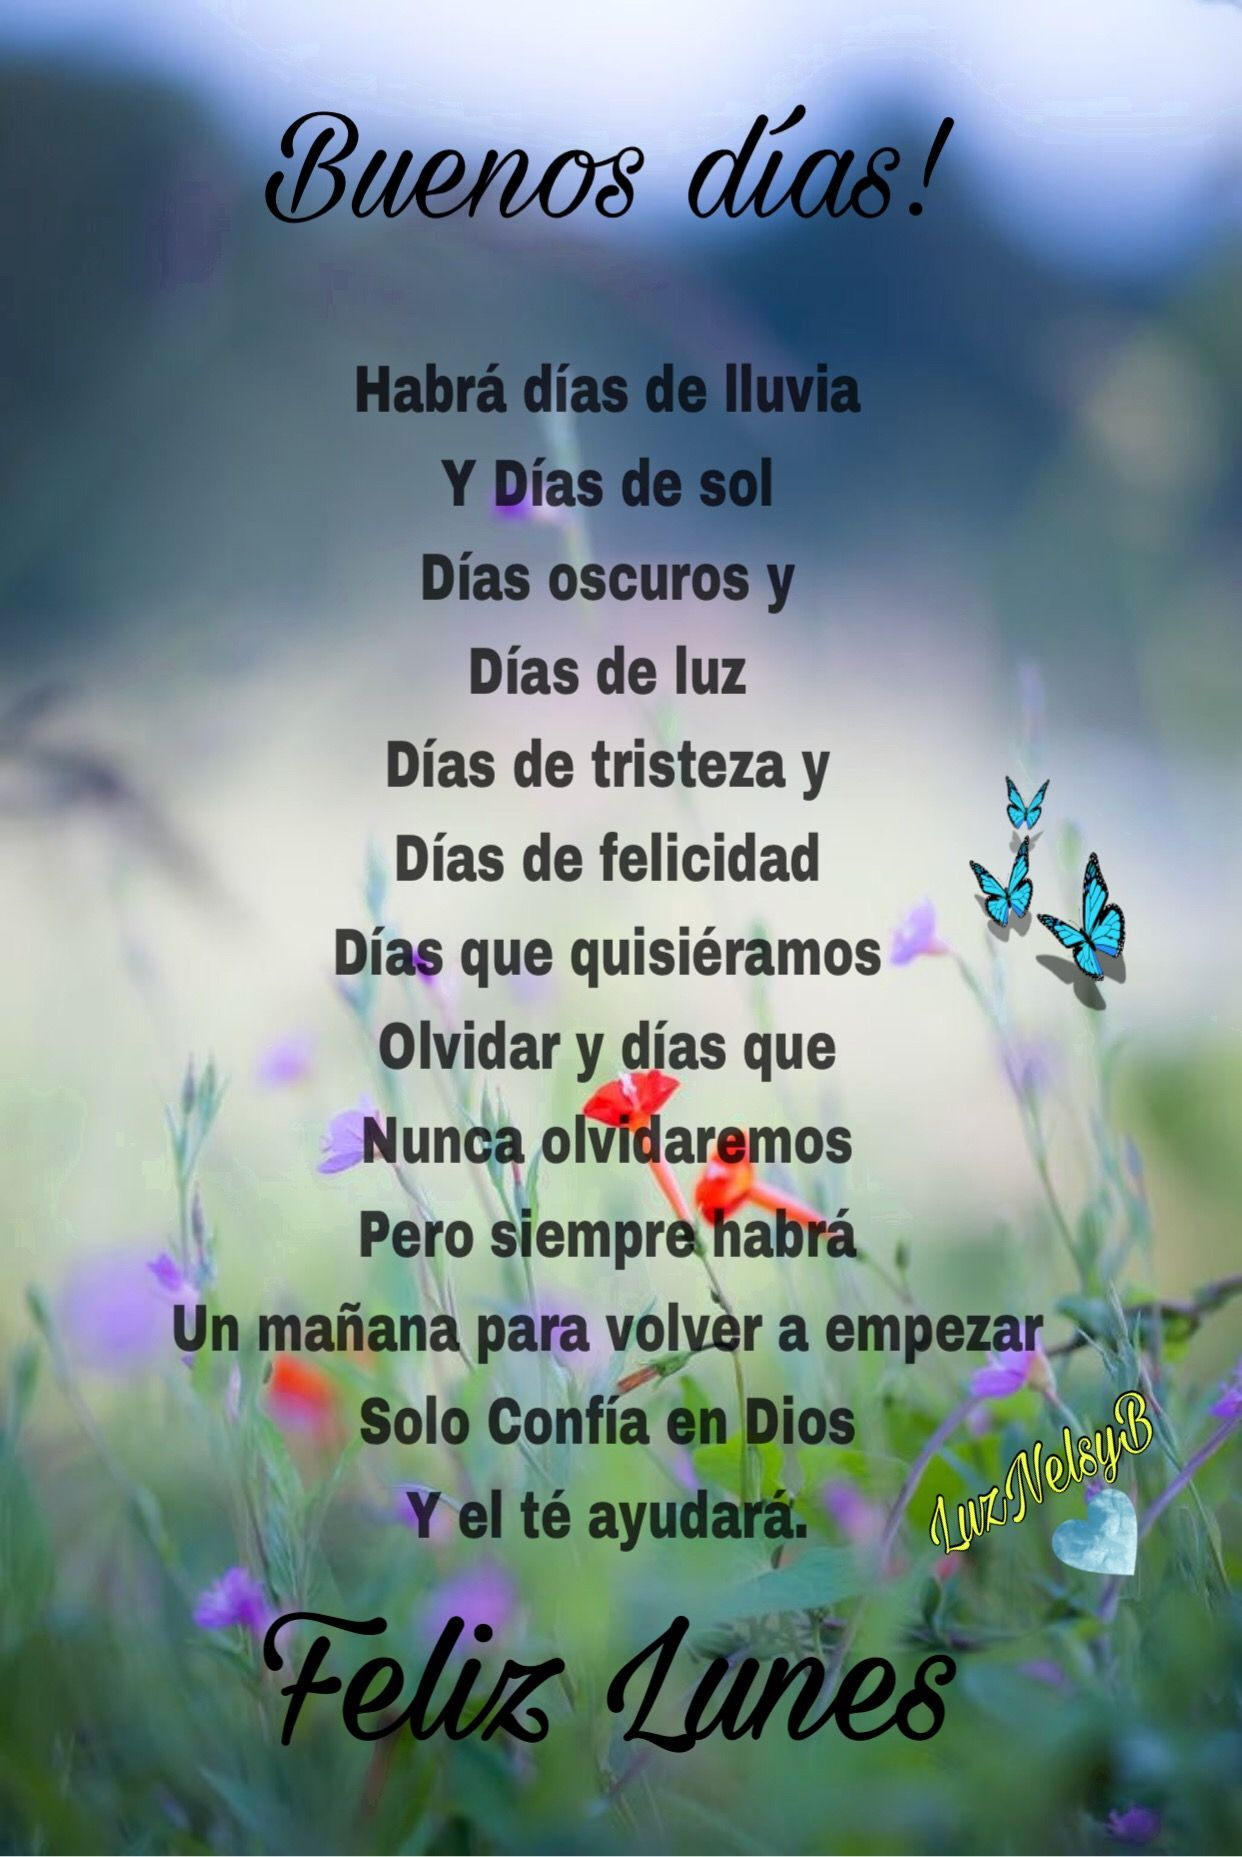 Bonito Lunes Mi Amor i created something amazing with picsart. take a look https